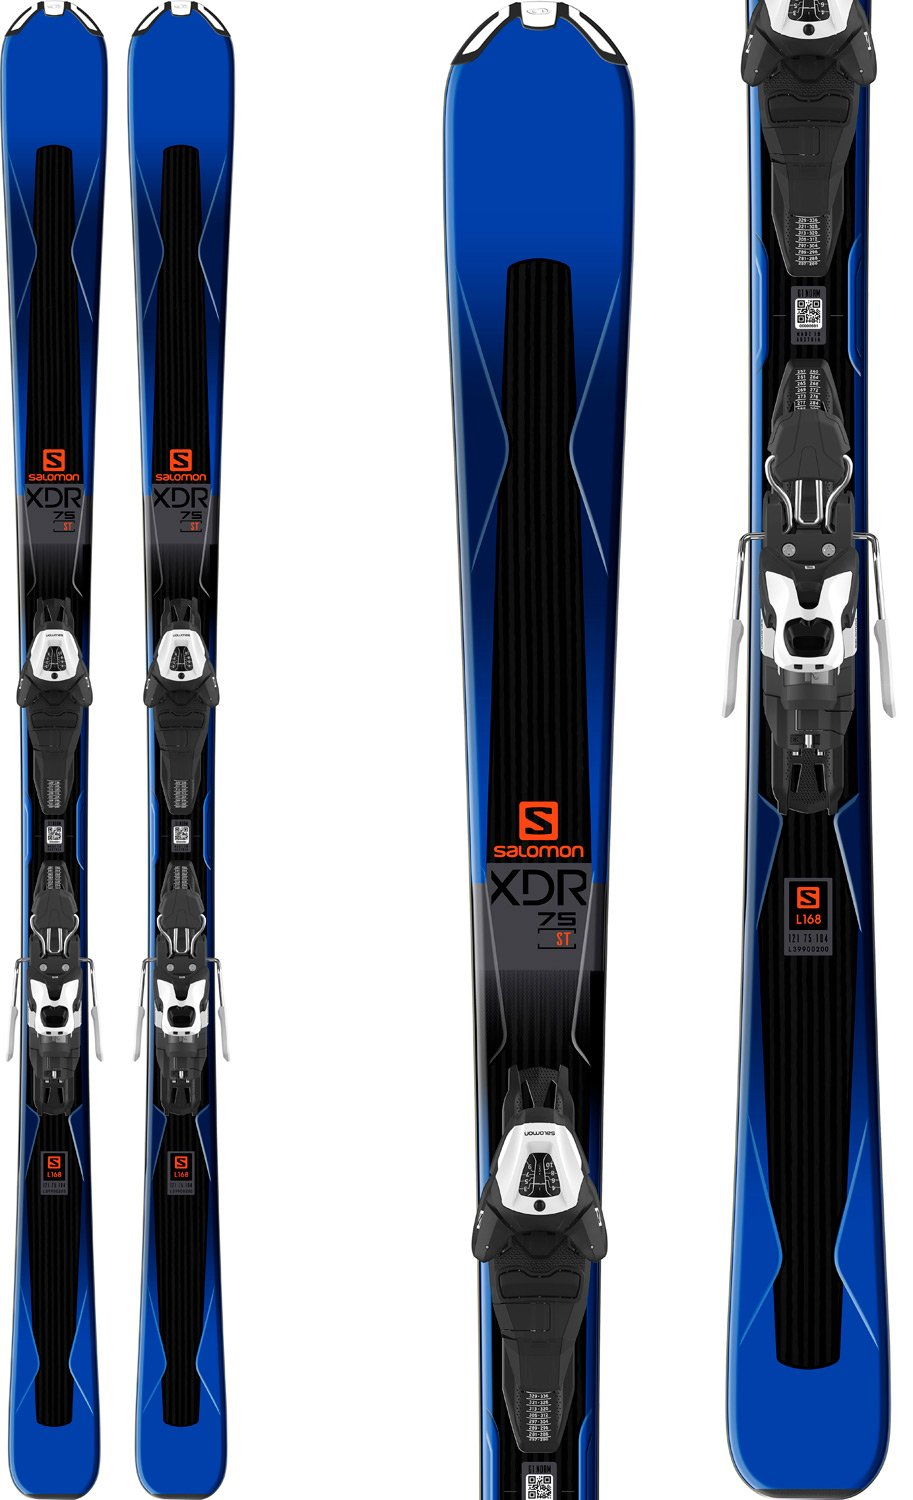 Salomon XDR 75 Skis w/Easytrak 2 Lithium 10 Bindings Mens